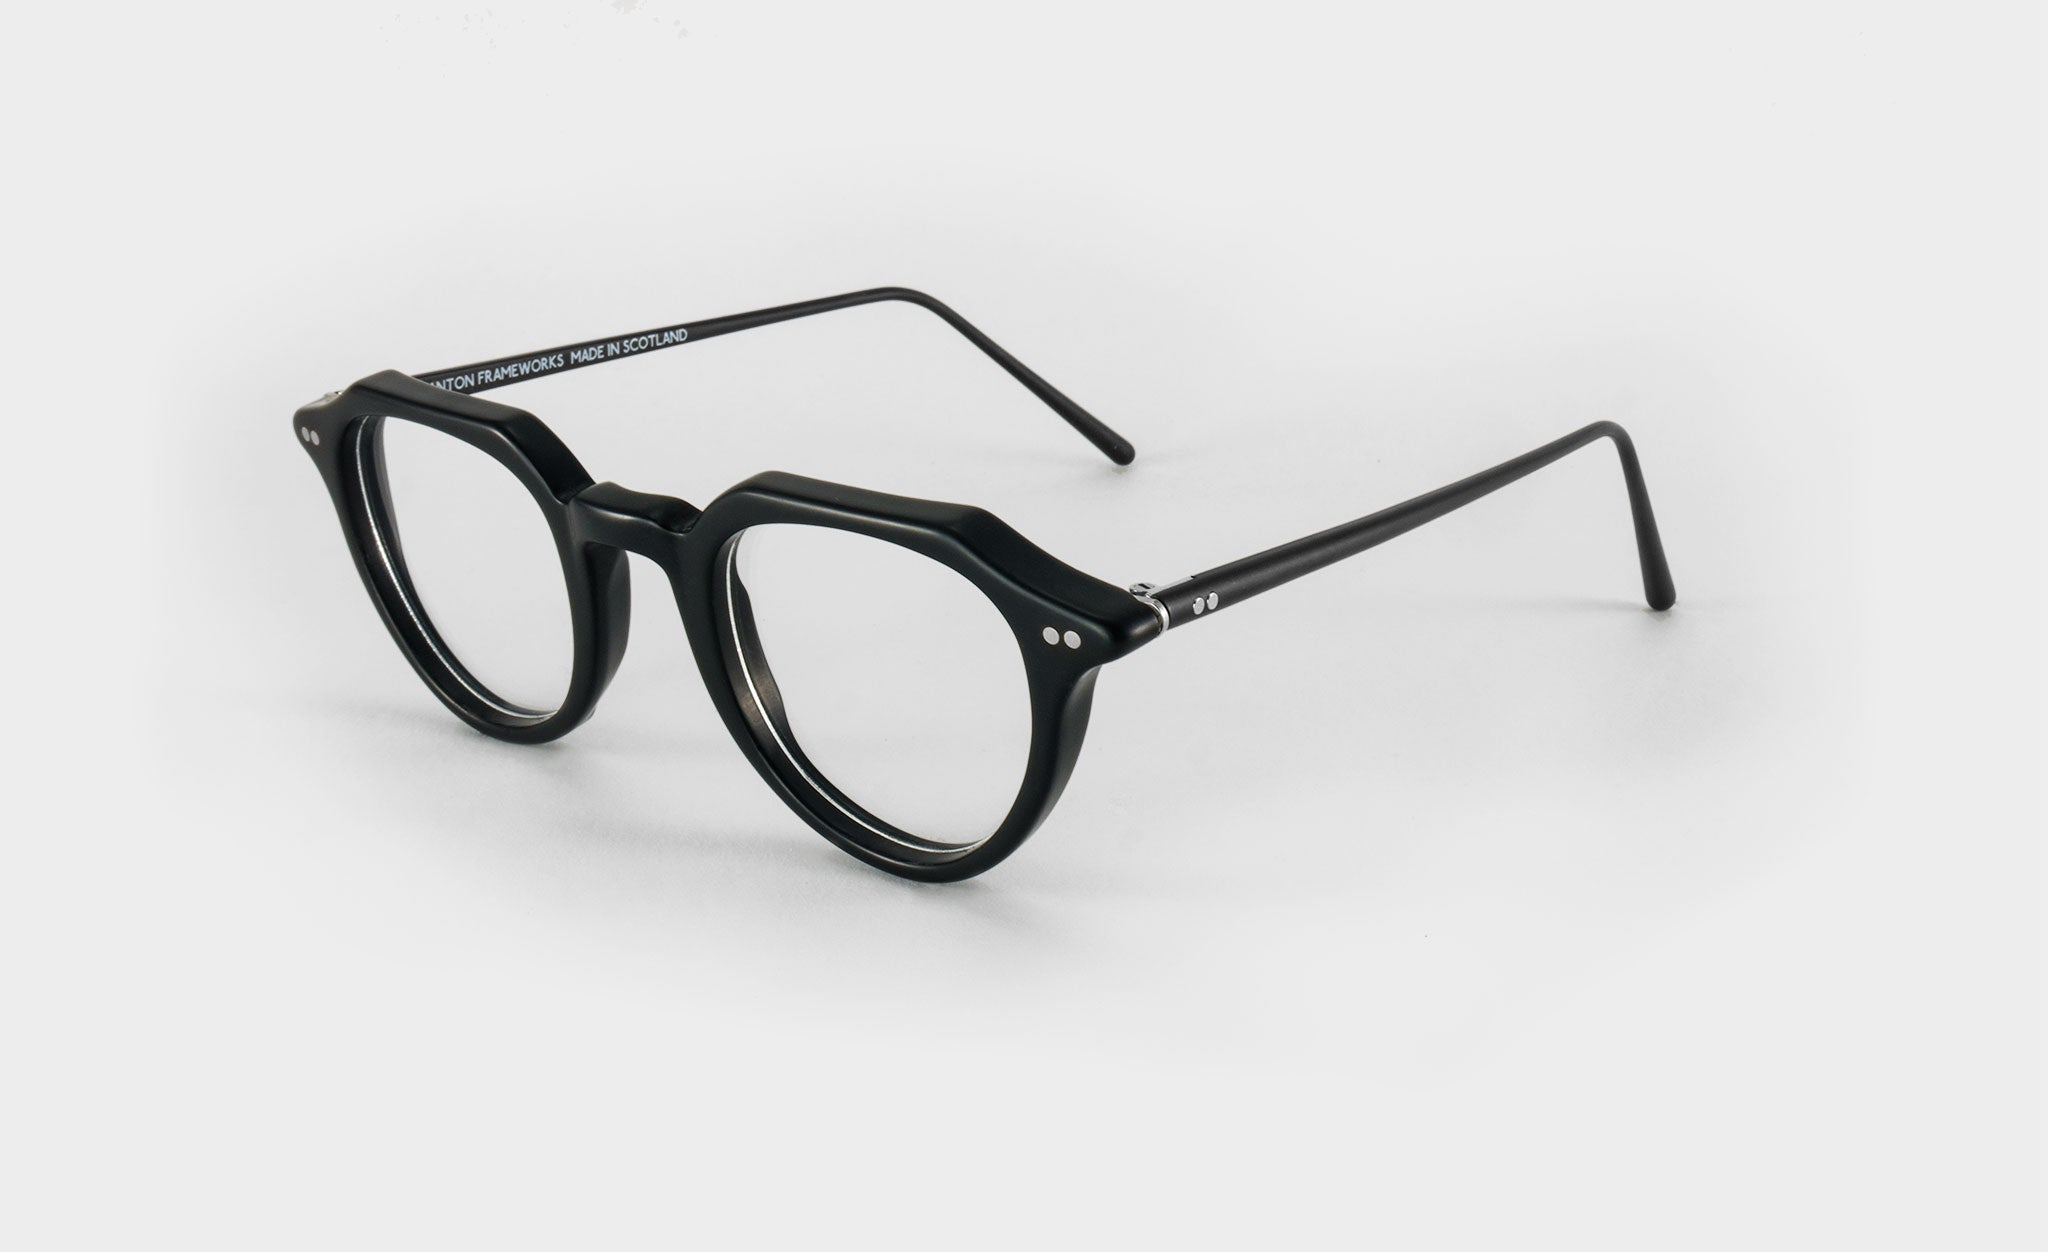 Womens black round glasses side view